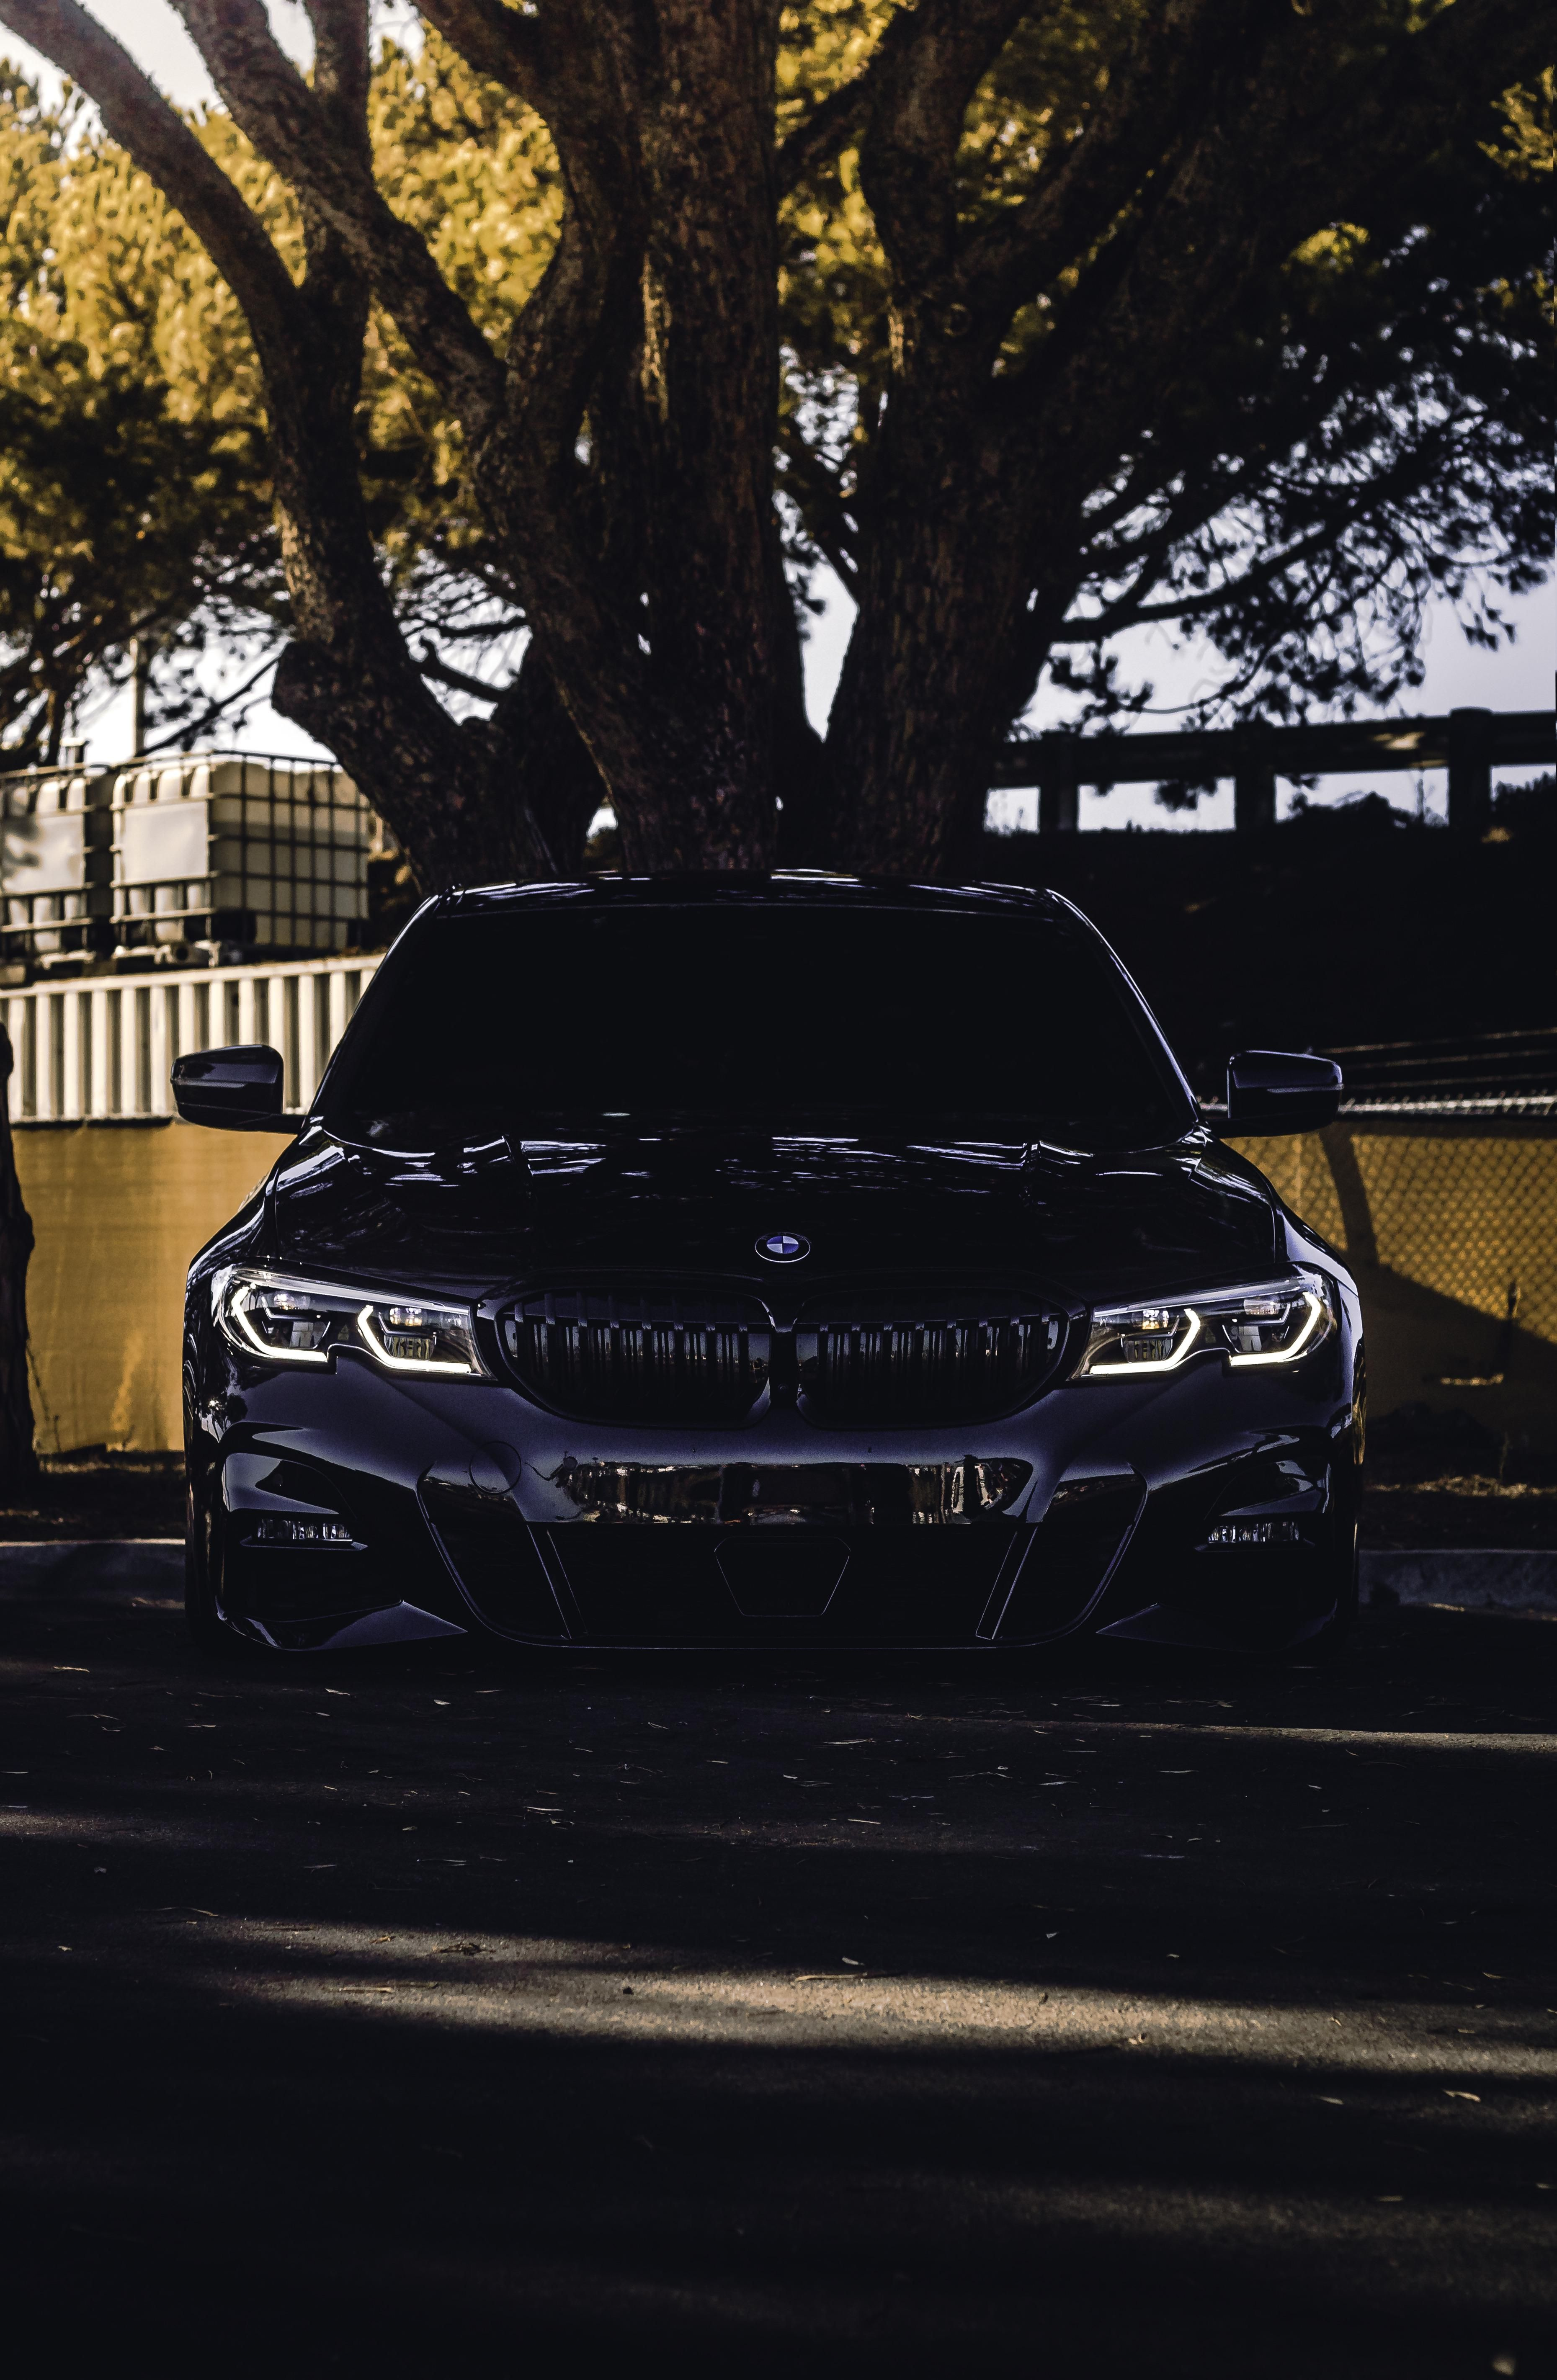 Took A Picture Of My Friends G20 330i Dream Cars Bmw Bmw Bmw G20